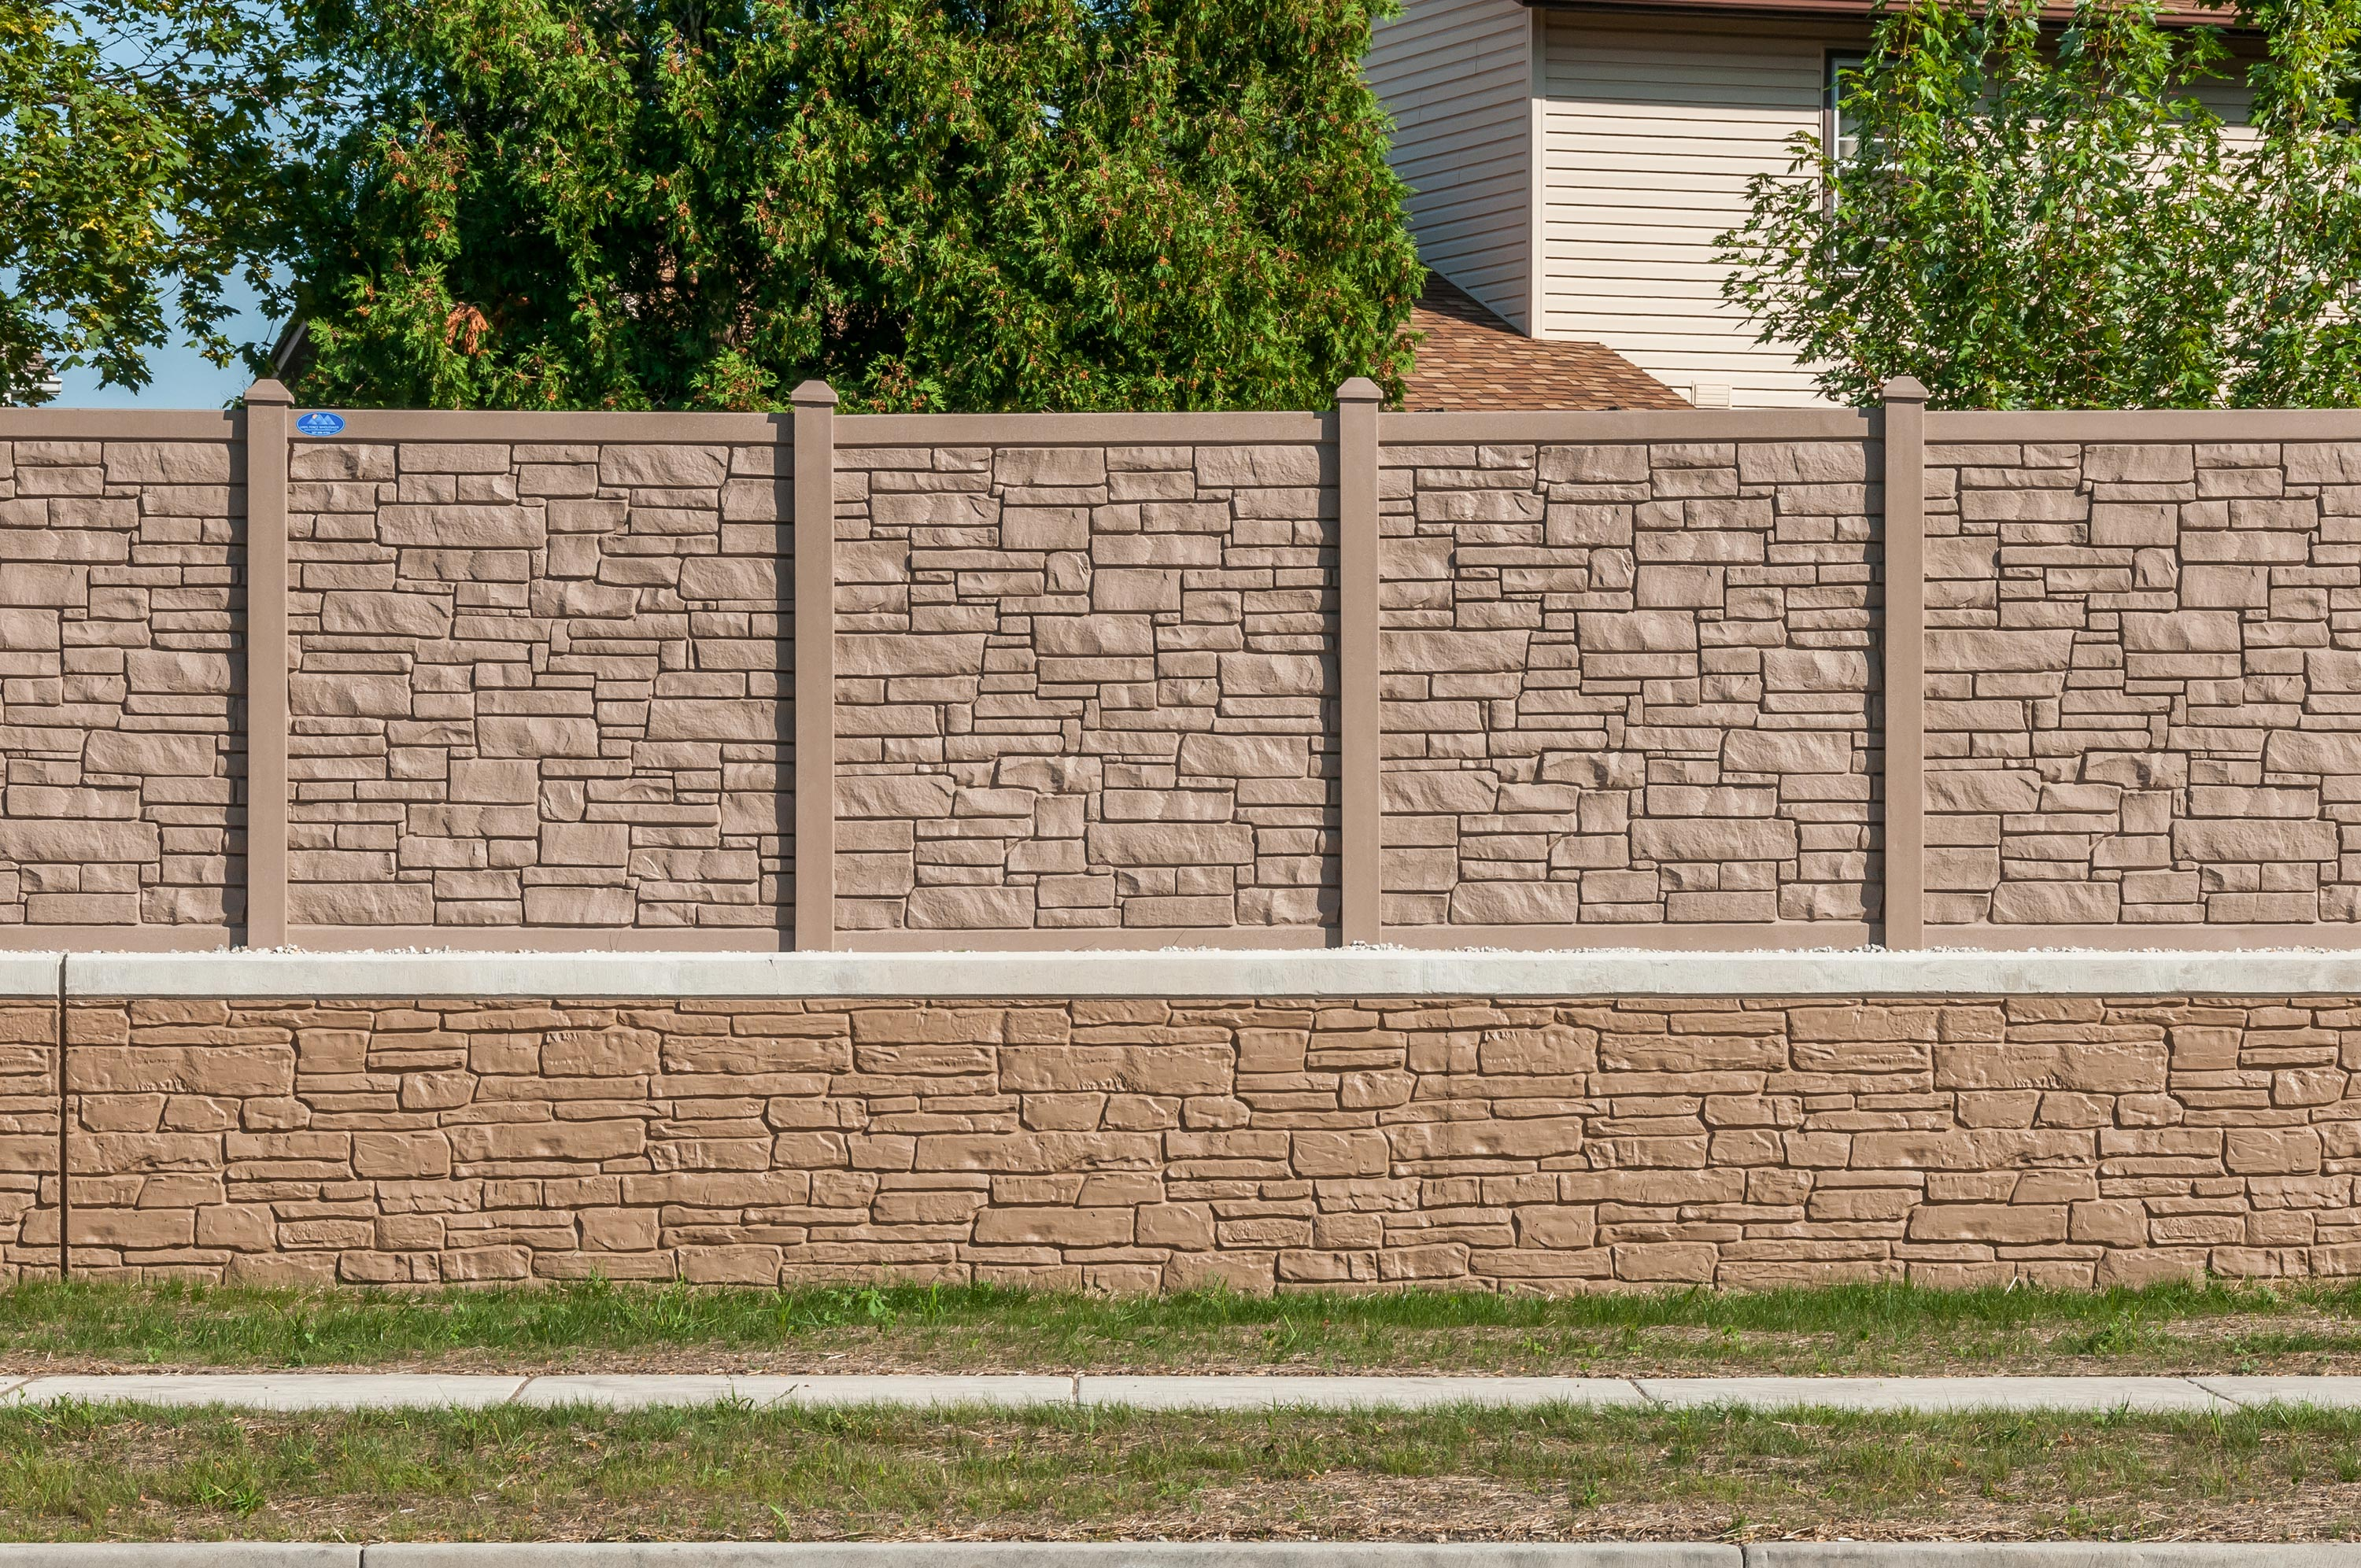 New client and great products: Vinyl Fence Wholesaler, St. Paul, MN